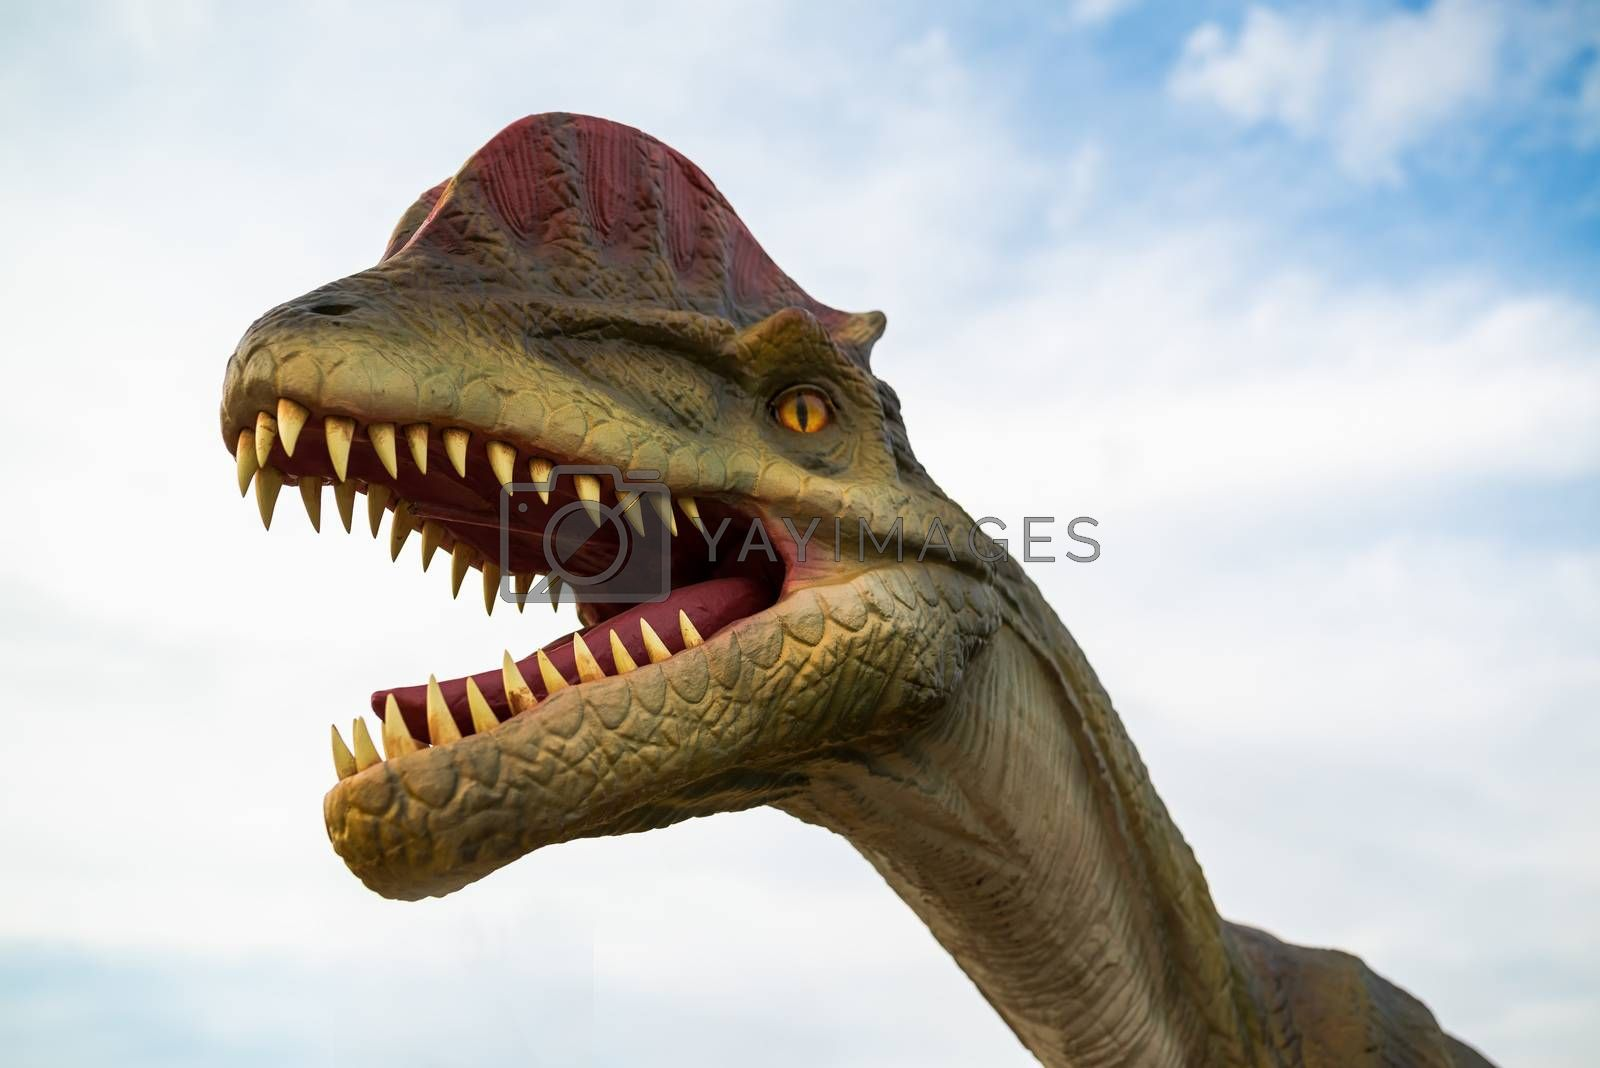 NOVI SAD, SERBIA - APRIL 28, 2016: Dilophosaurus life-size model of prehistoric animal in theme entertainment Dino Park in Novi Sad, Serbia. To date, dilophosaurus has been largest meat-eater of the early Jurassic period found.